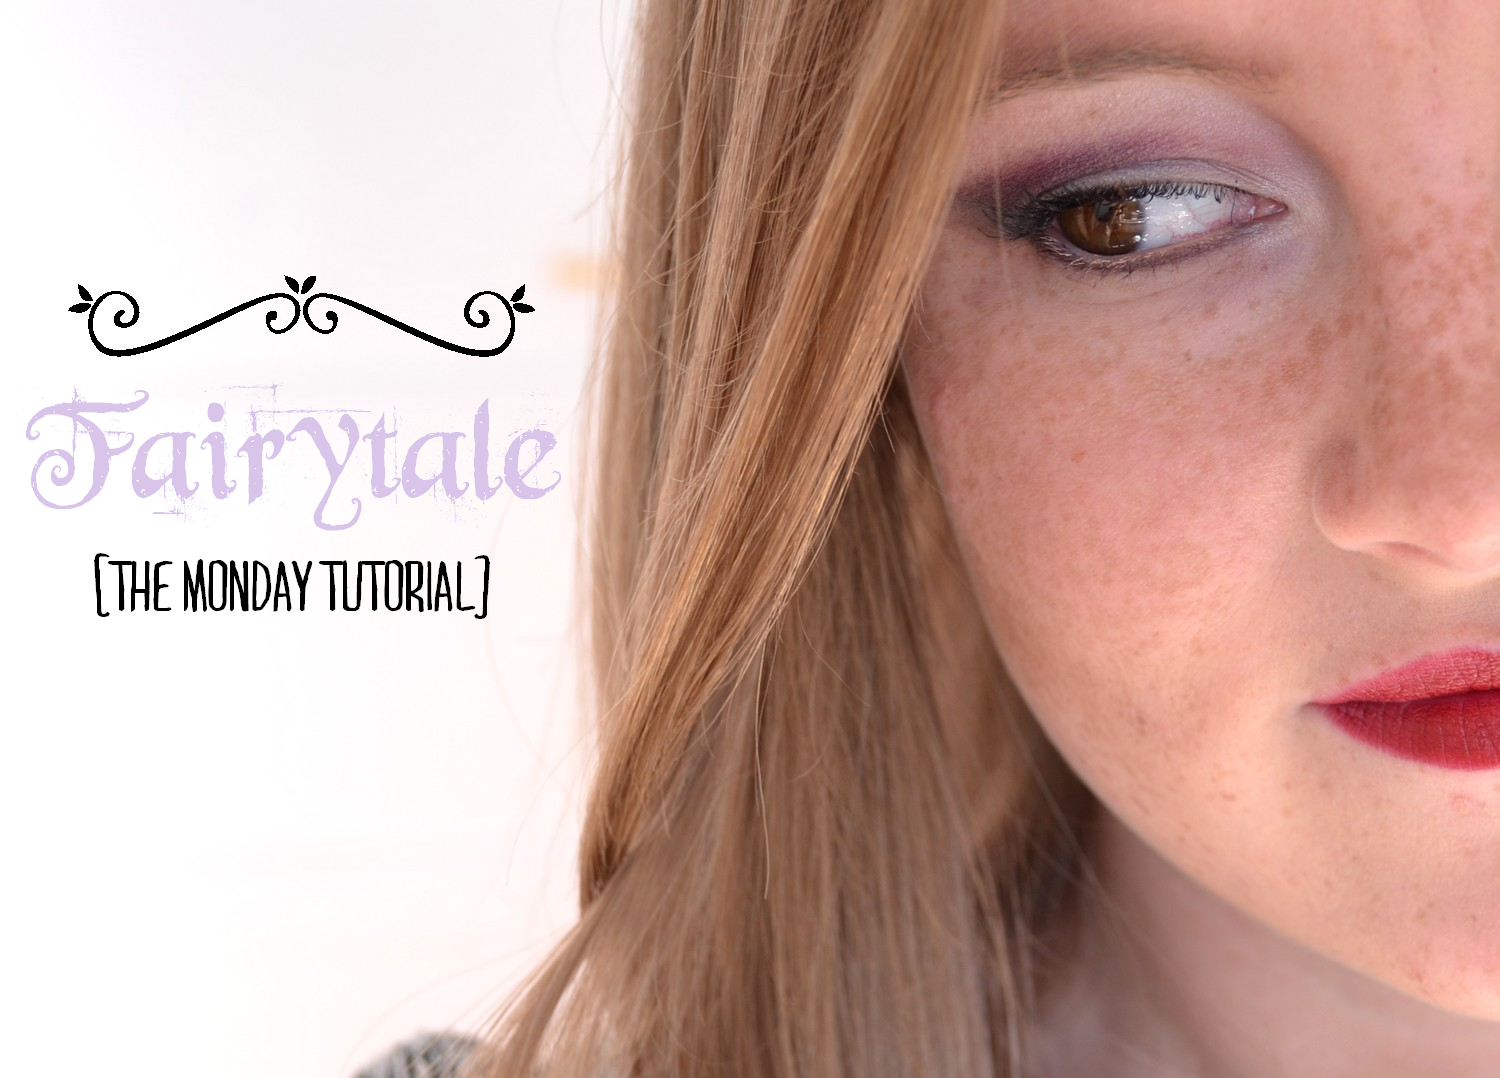 http://www.dreamingsmoothly.com/2015/10/monday-tutorial-fairytale.html